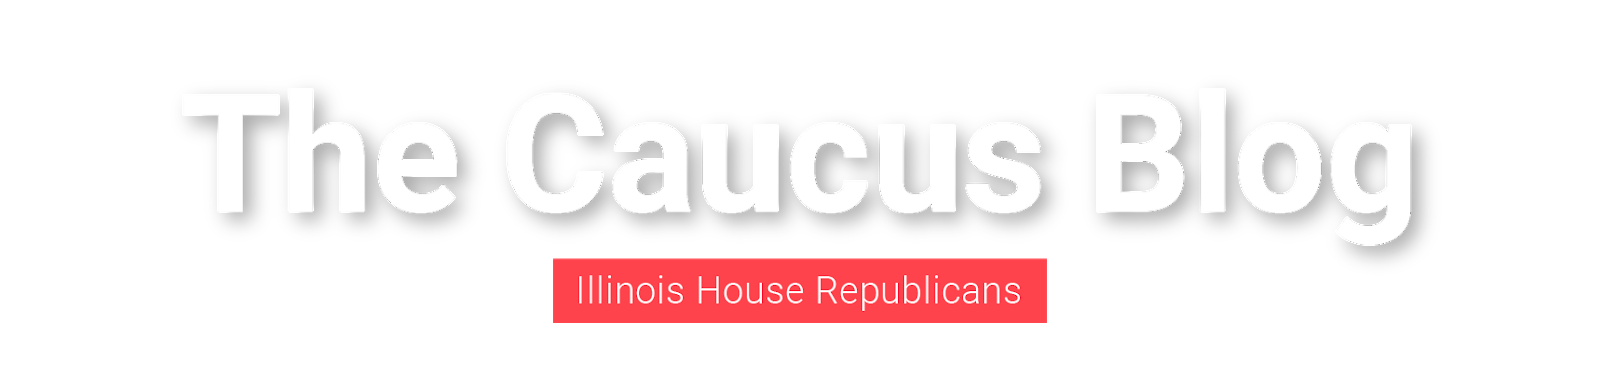 The Caucus Blog of the Illinois House Republicans